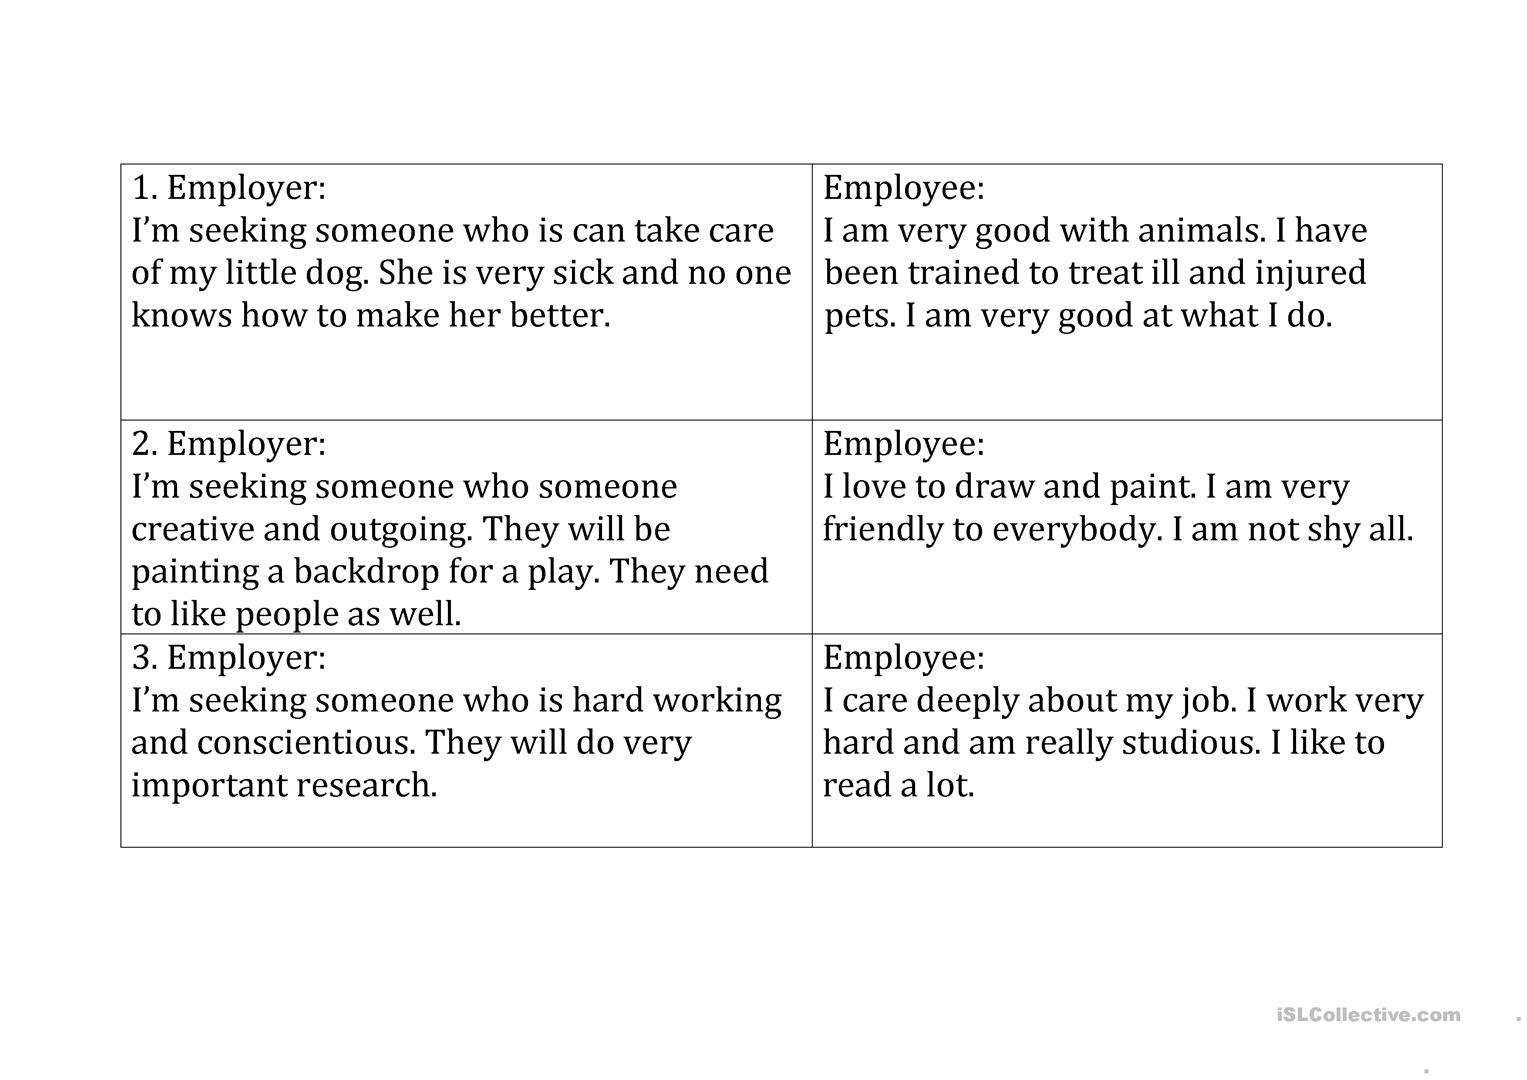 Personality And Job Match Worksheet